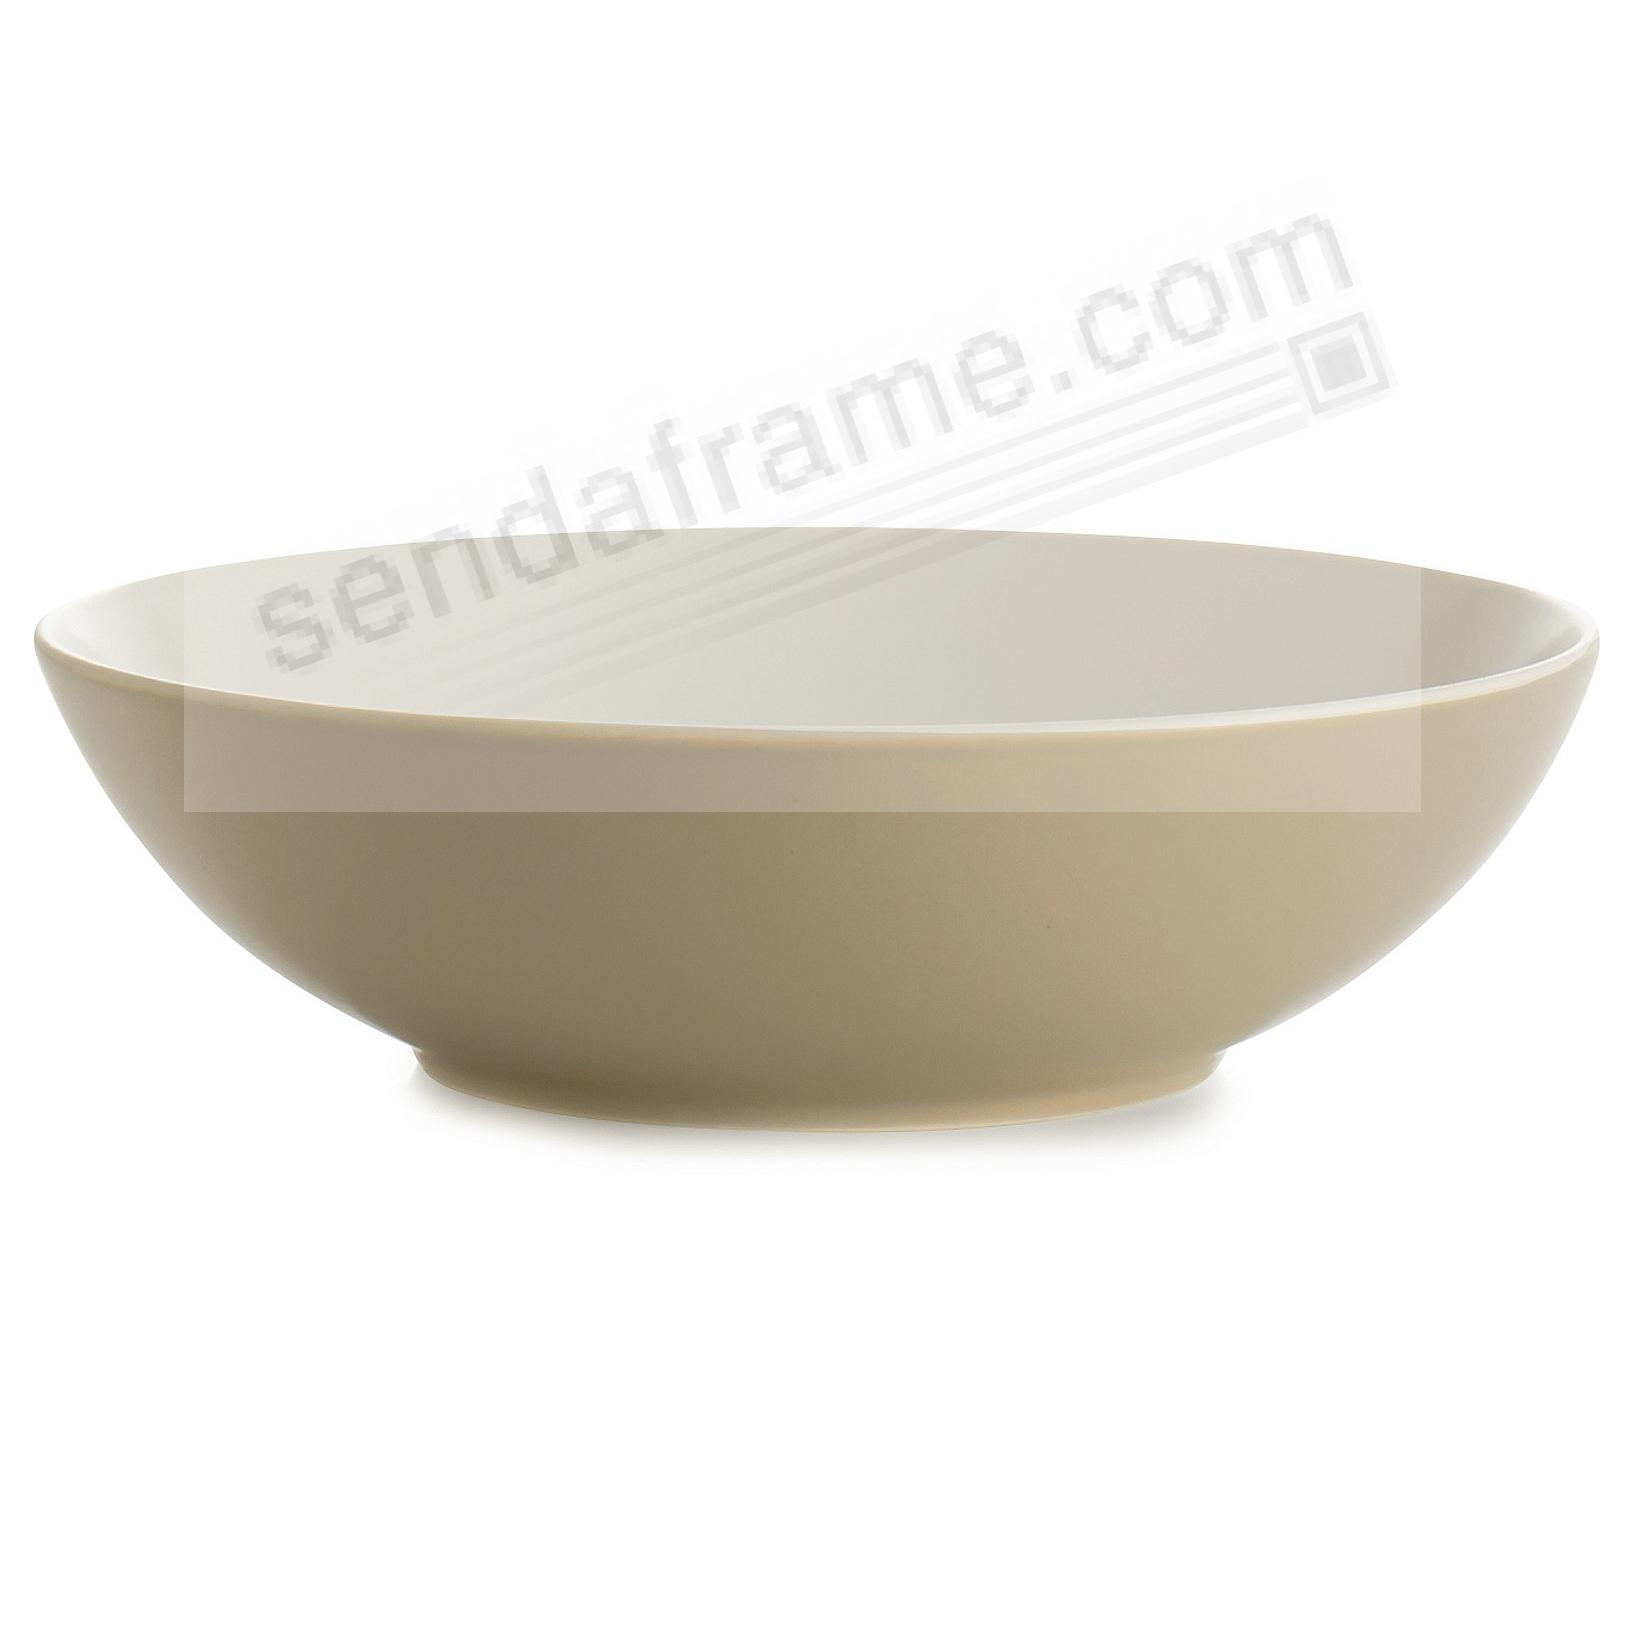 POP SOUP/CEREAL BOWL SAND by Nambe®